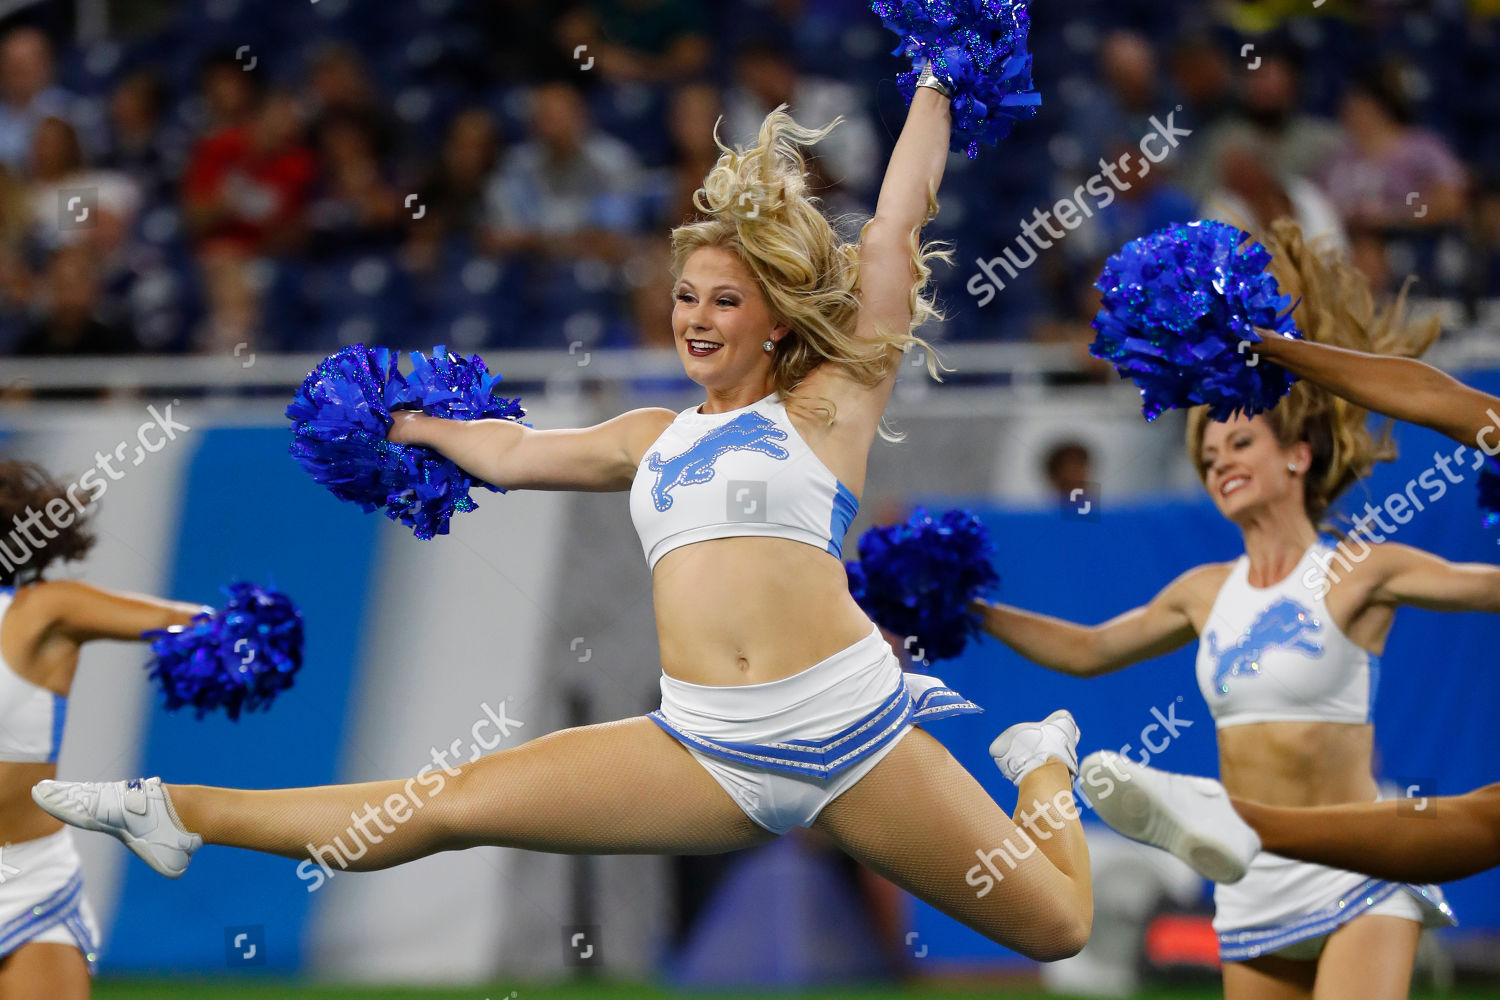 Detroit Lions Cheerleaders Perform During First Half